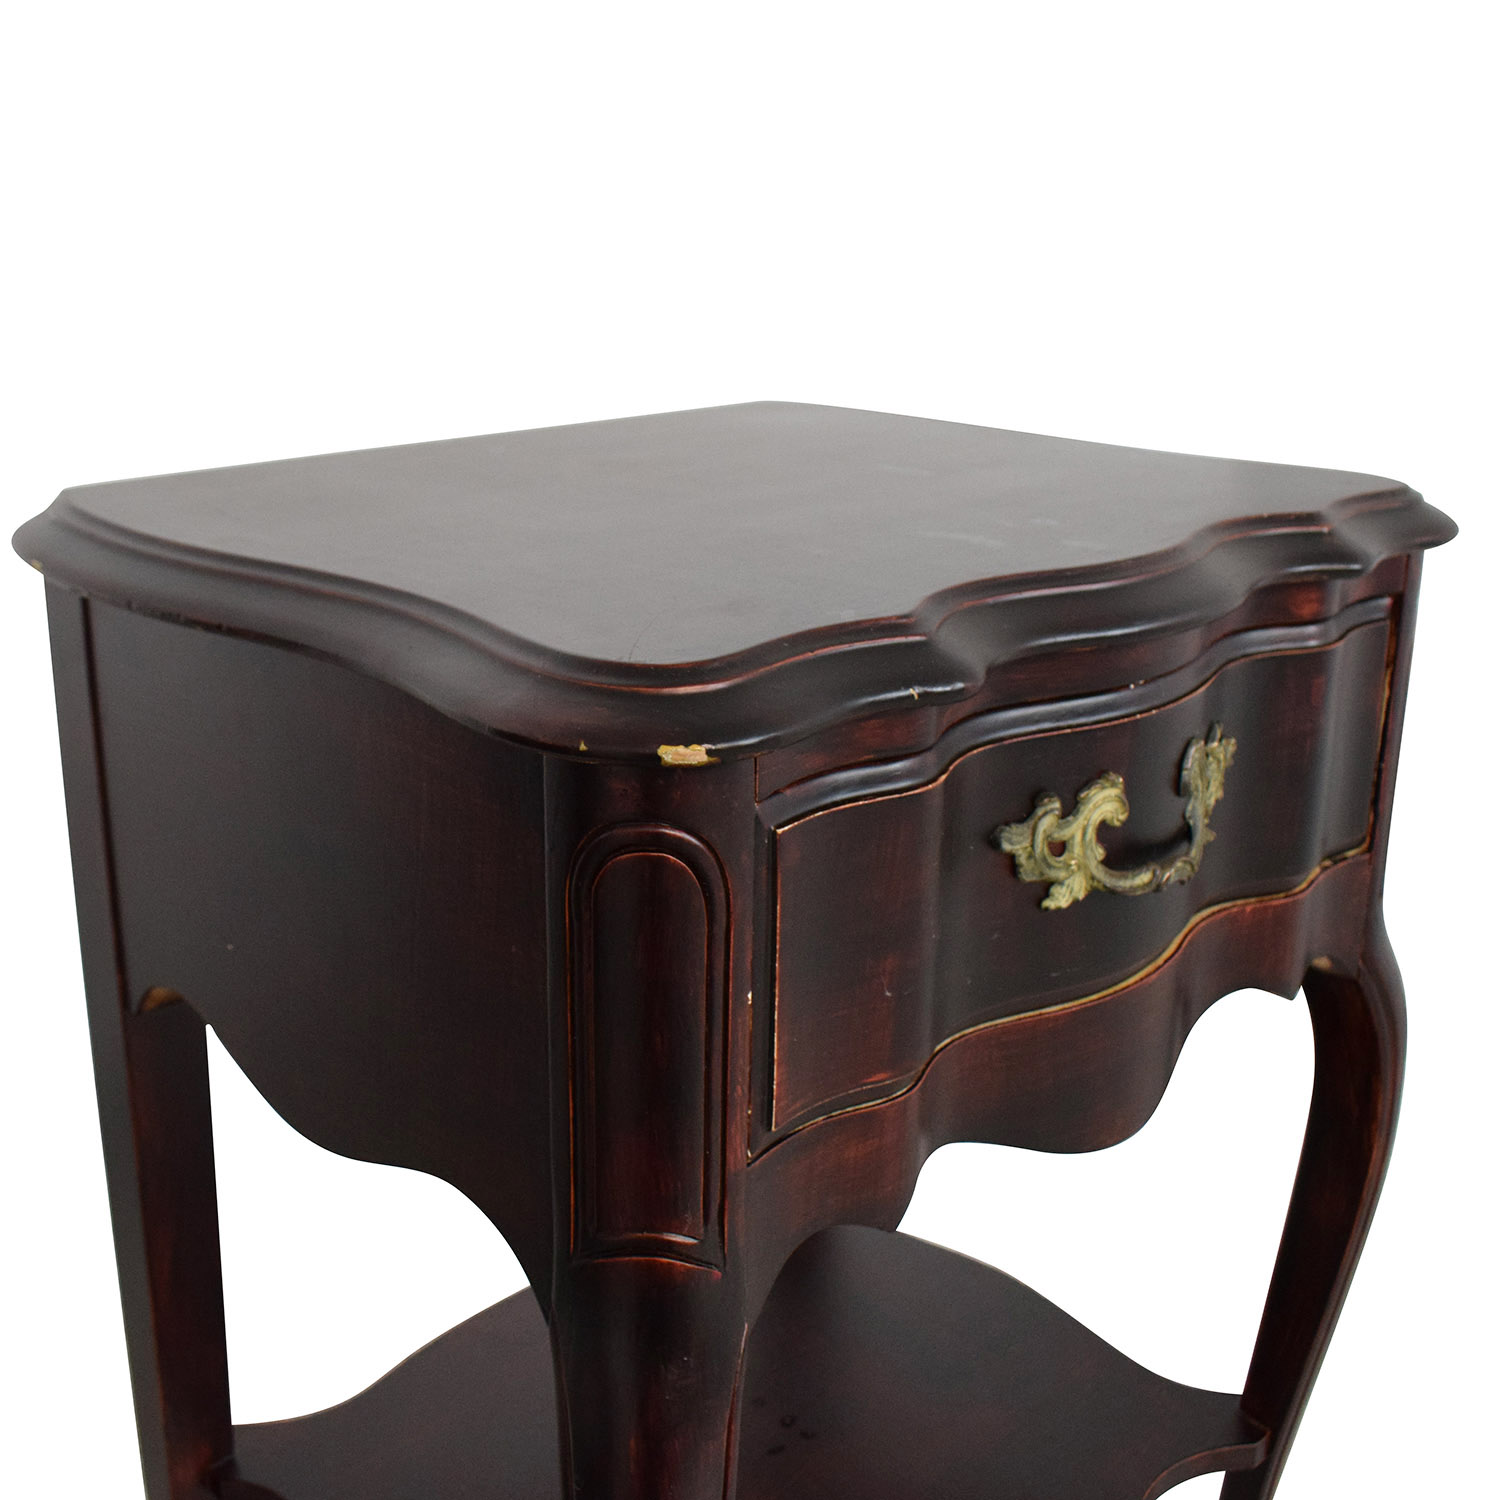 A-America Wood Furniture A-America Wood Furniture Night Stands dimensions